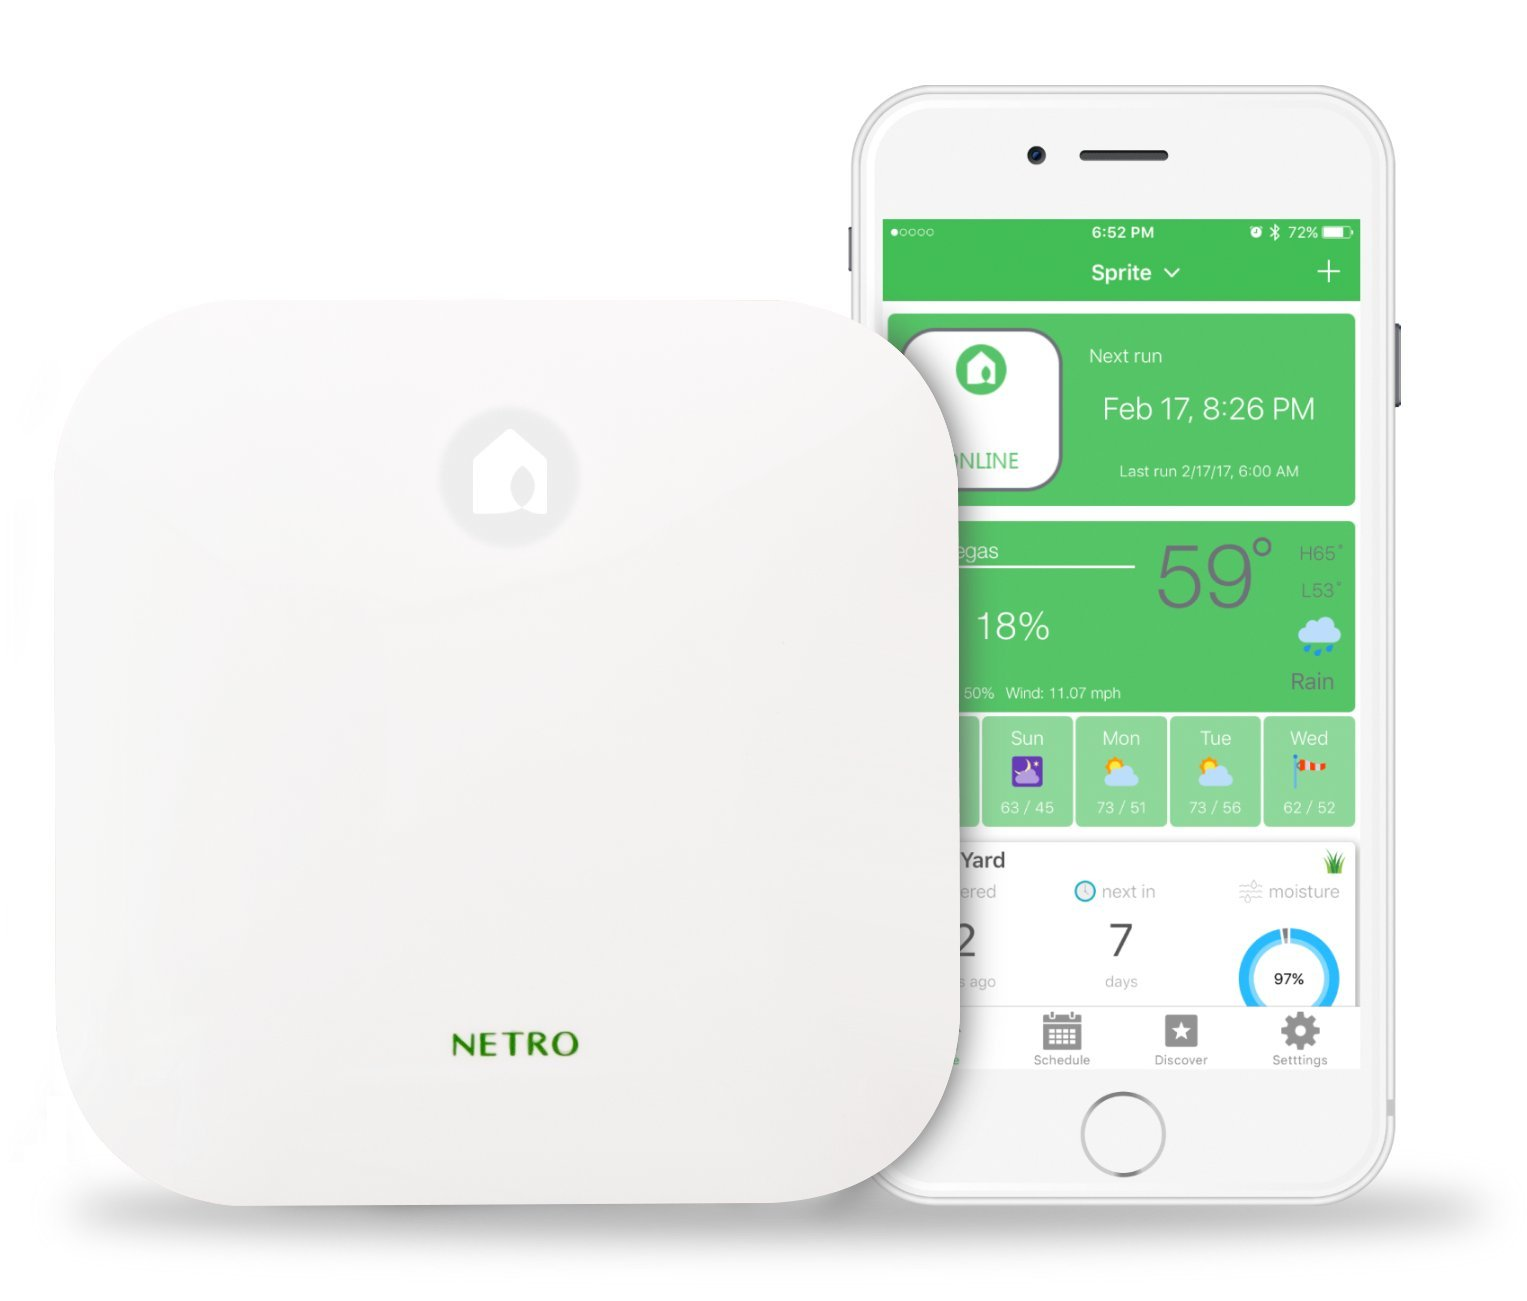 Netro Smart Sprinkler Controller, WiFi, Weather aware, Remote access, 12 Zone, Works with Amazon Alexa